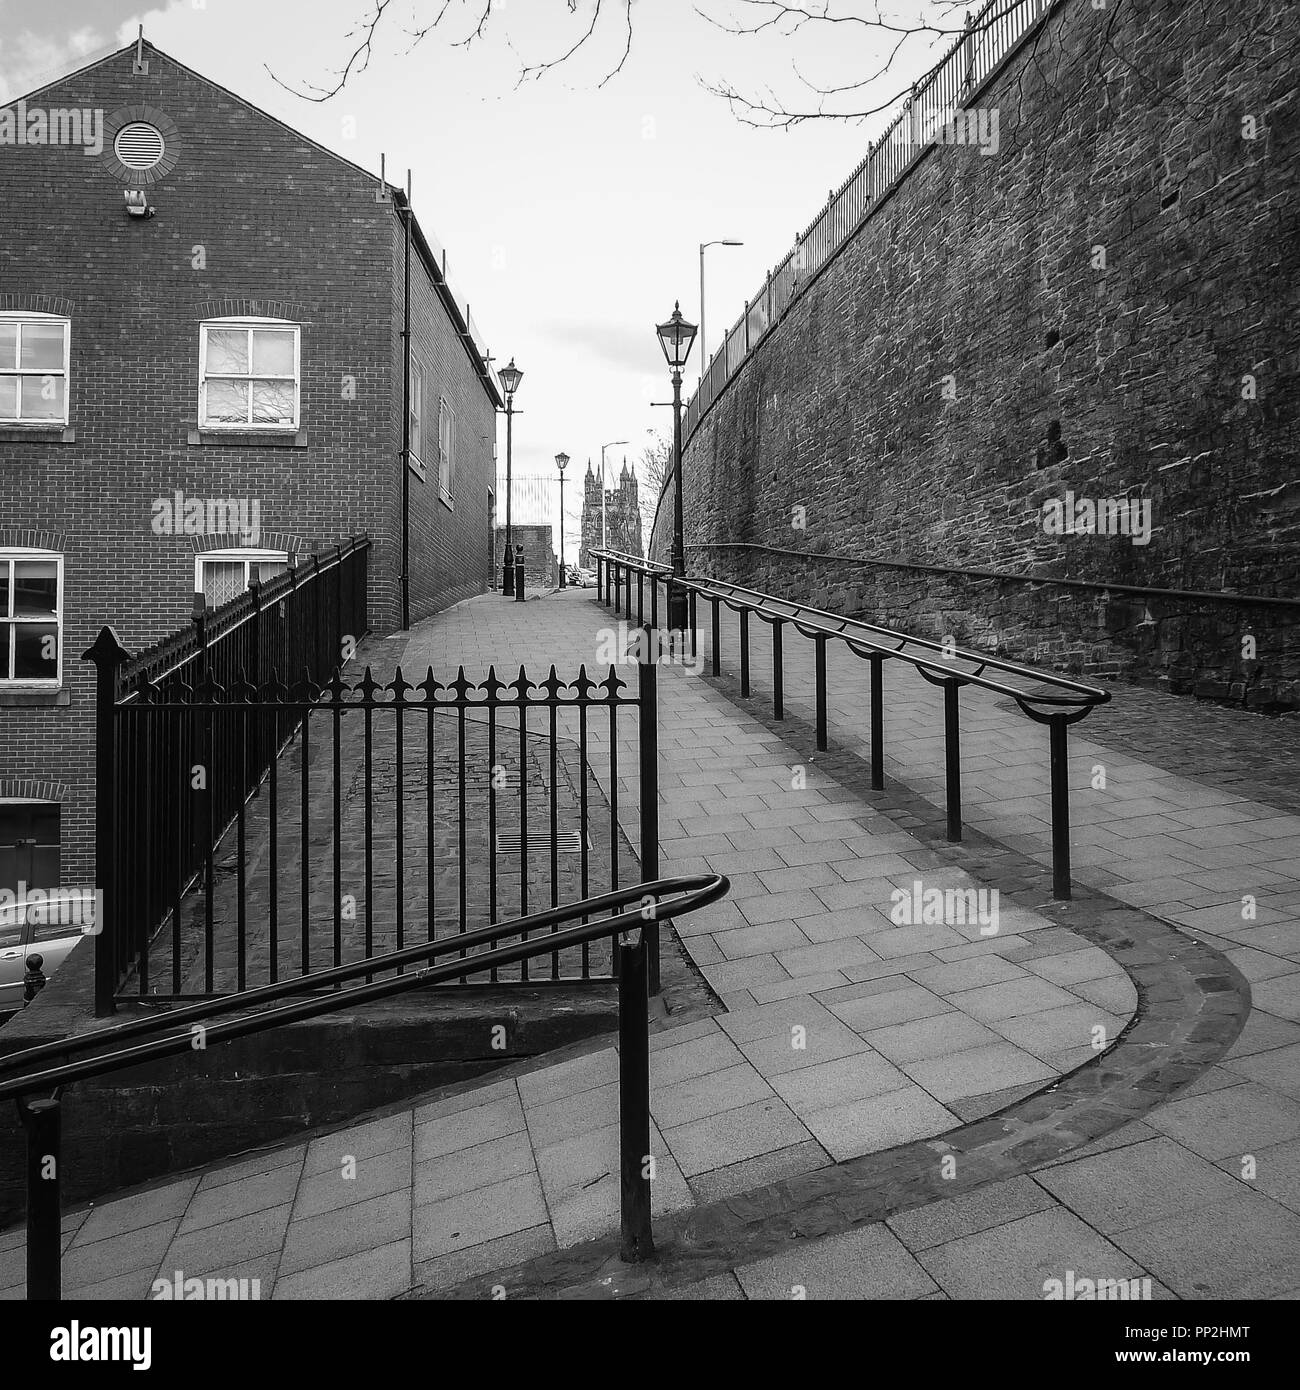 Old hill path in Stockport, Cheshire, UK - Stock Image